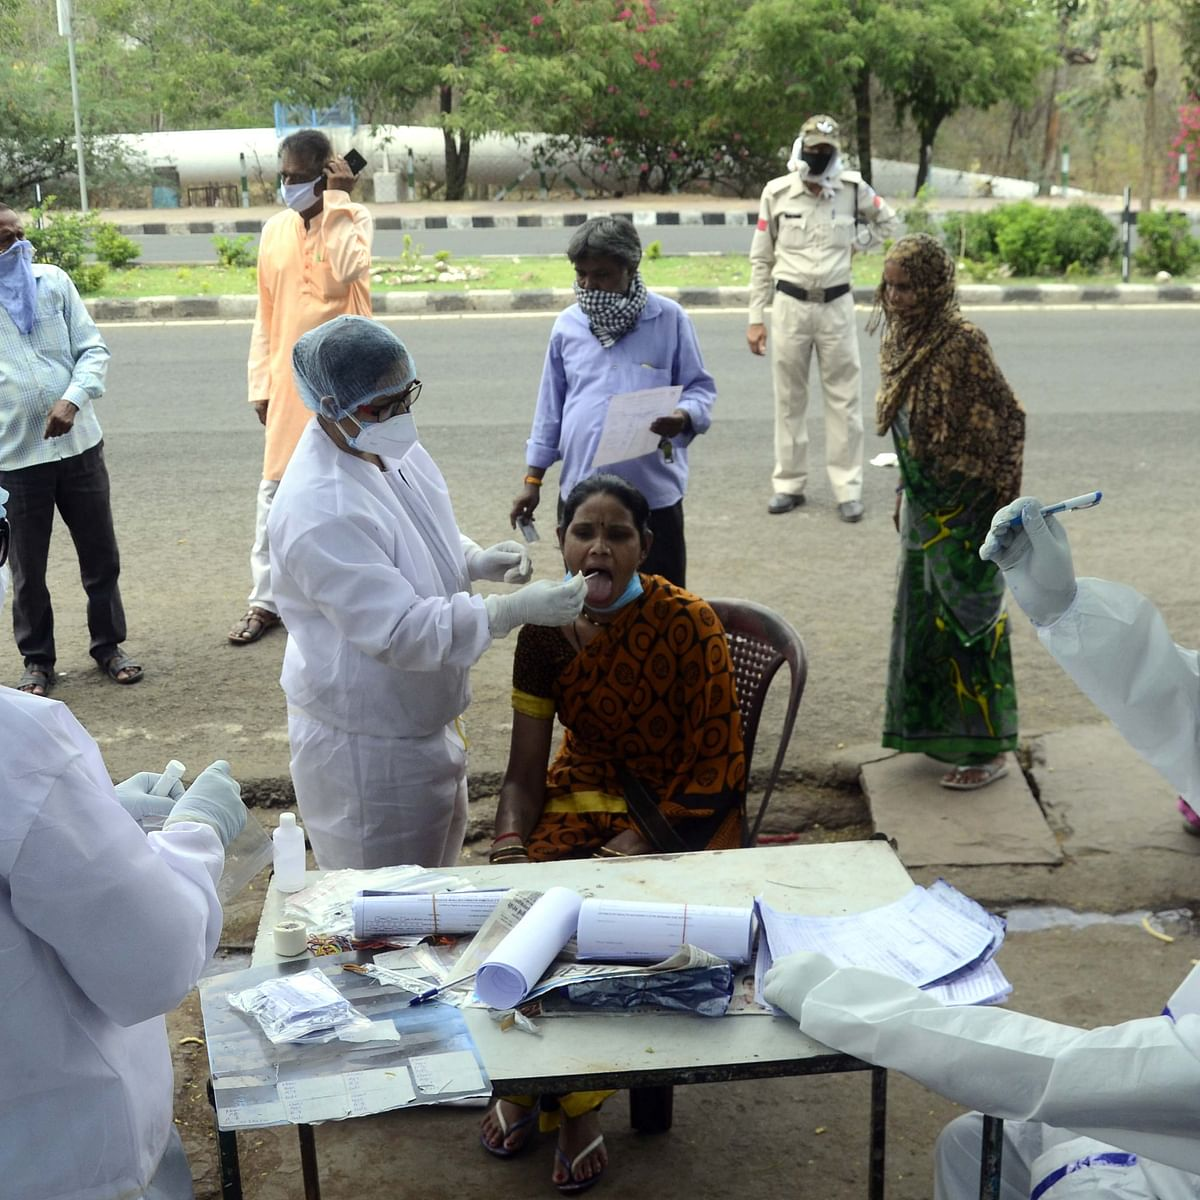 Coronavirus in Bhopal: Irregularity in figures, records of many patients not available